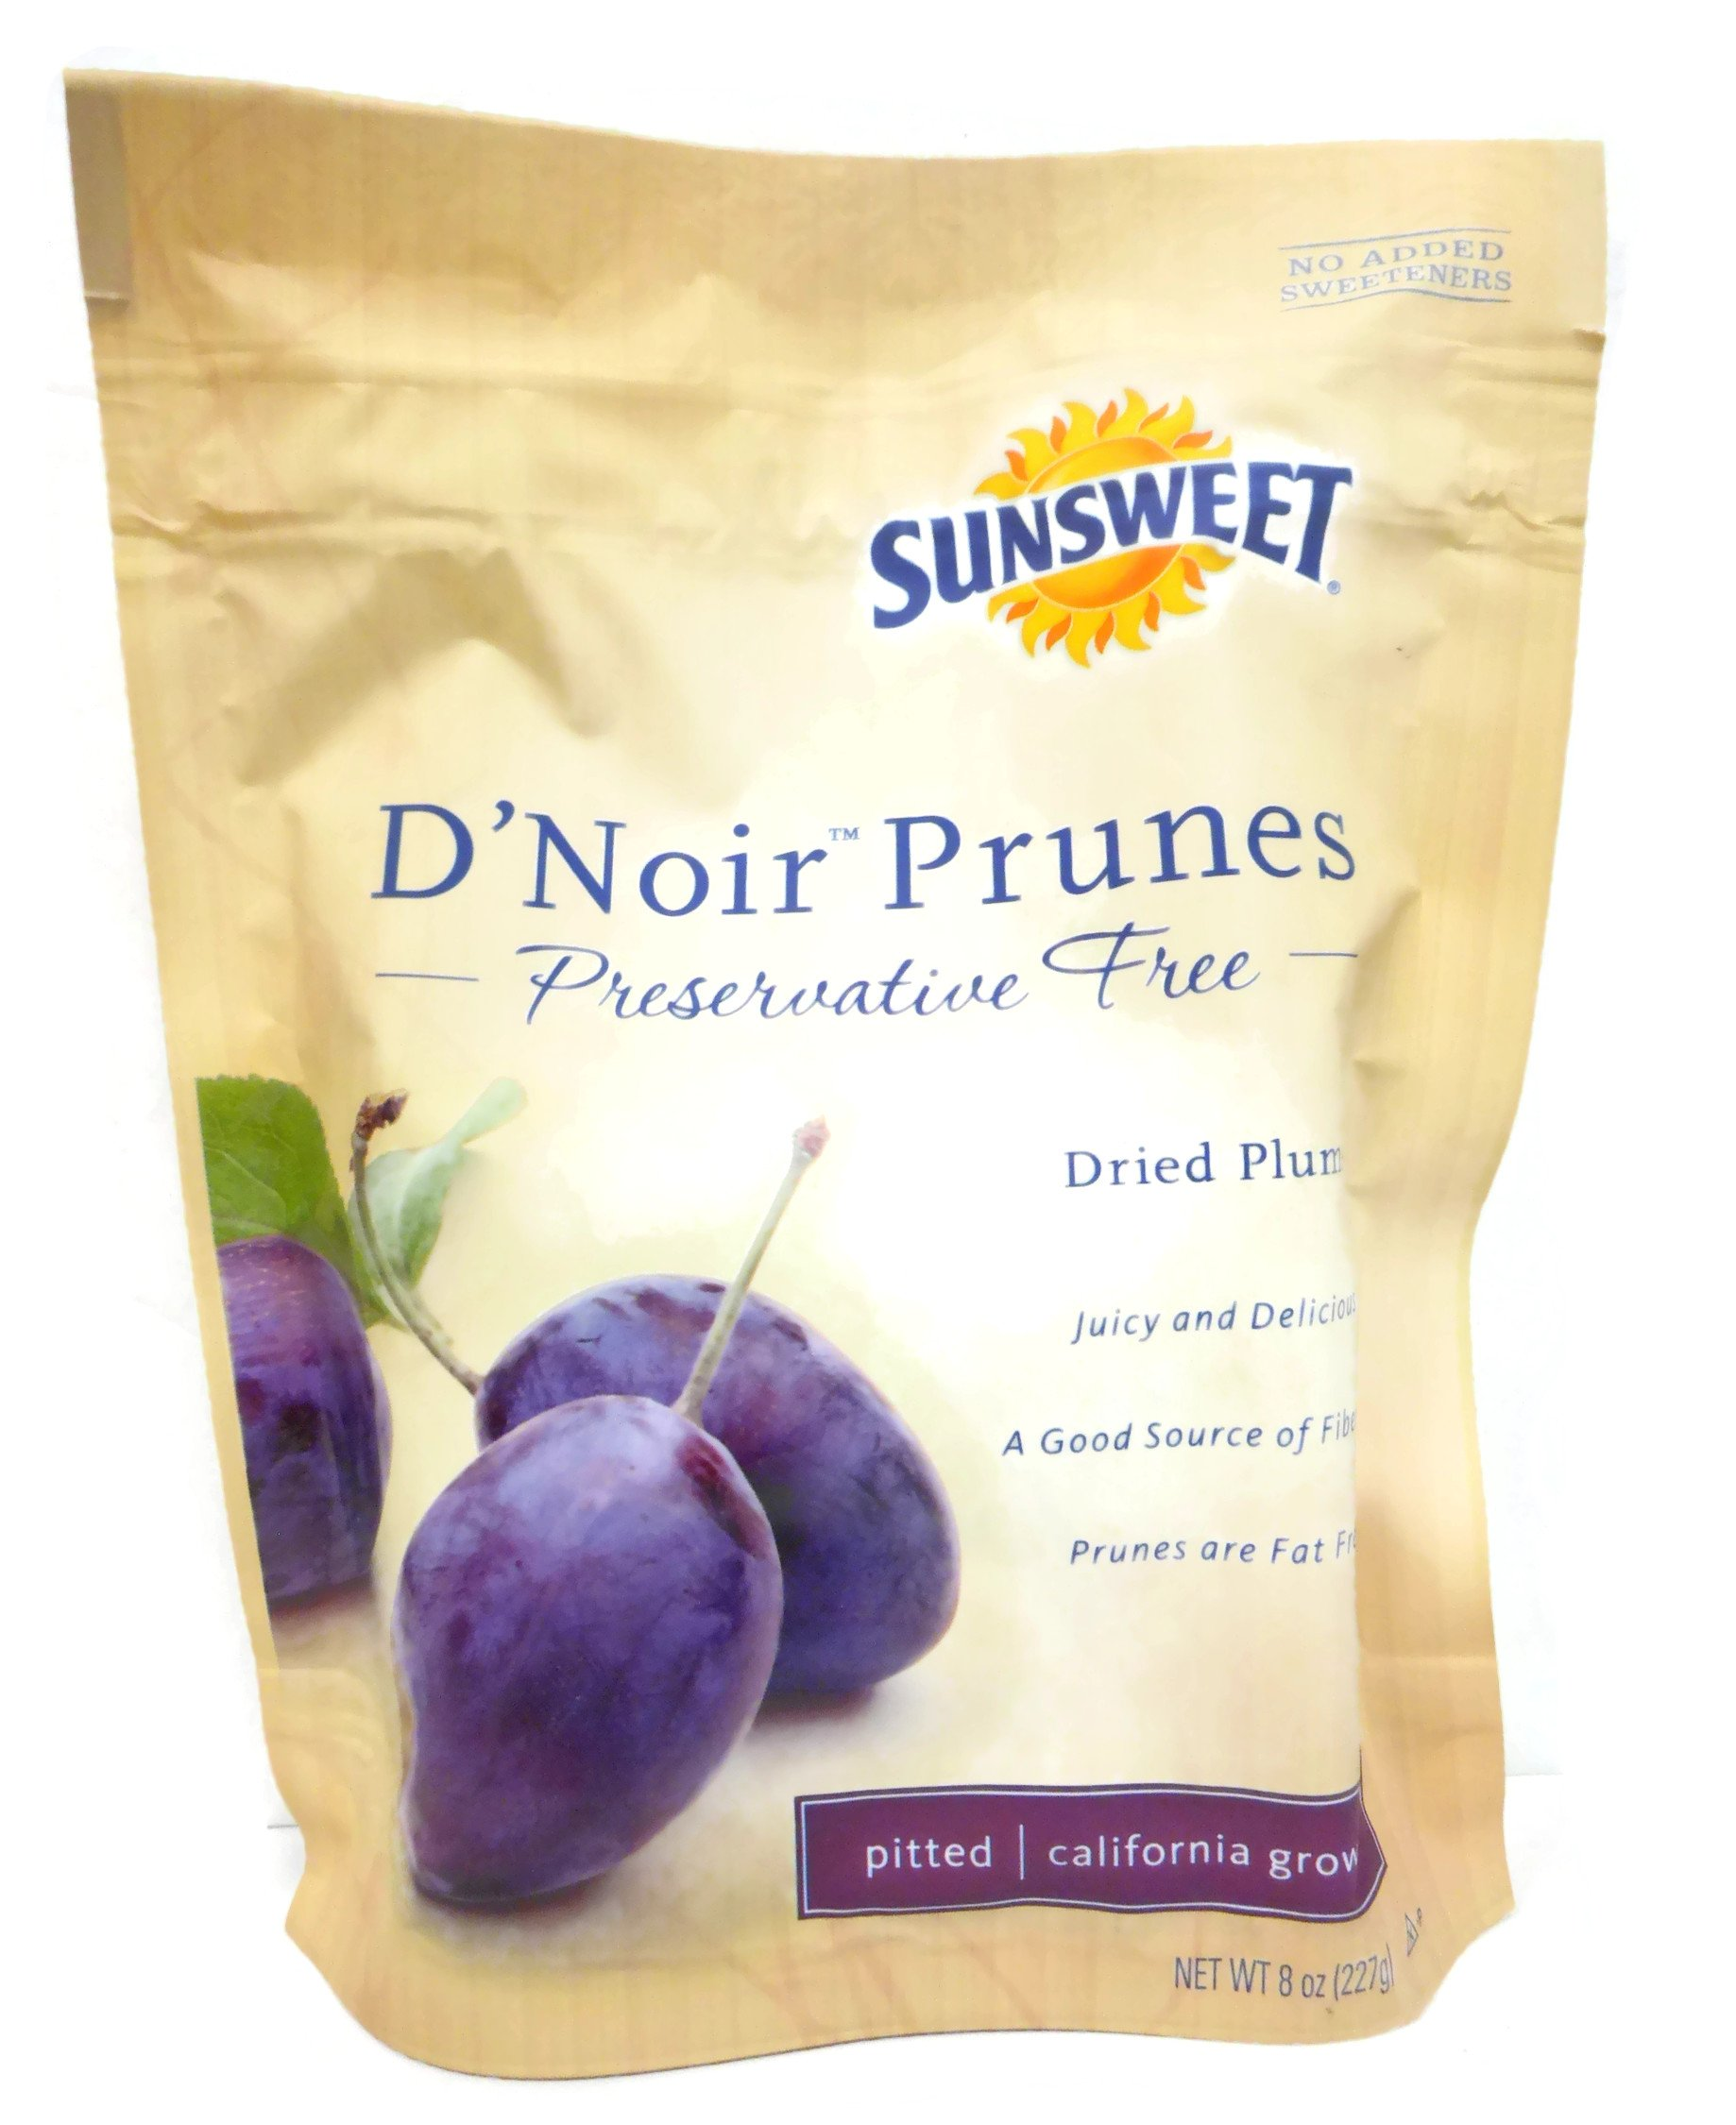 Sunsweet D'Noir Prunes in 8 oz Bag (Case of 12)